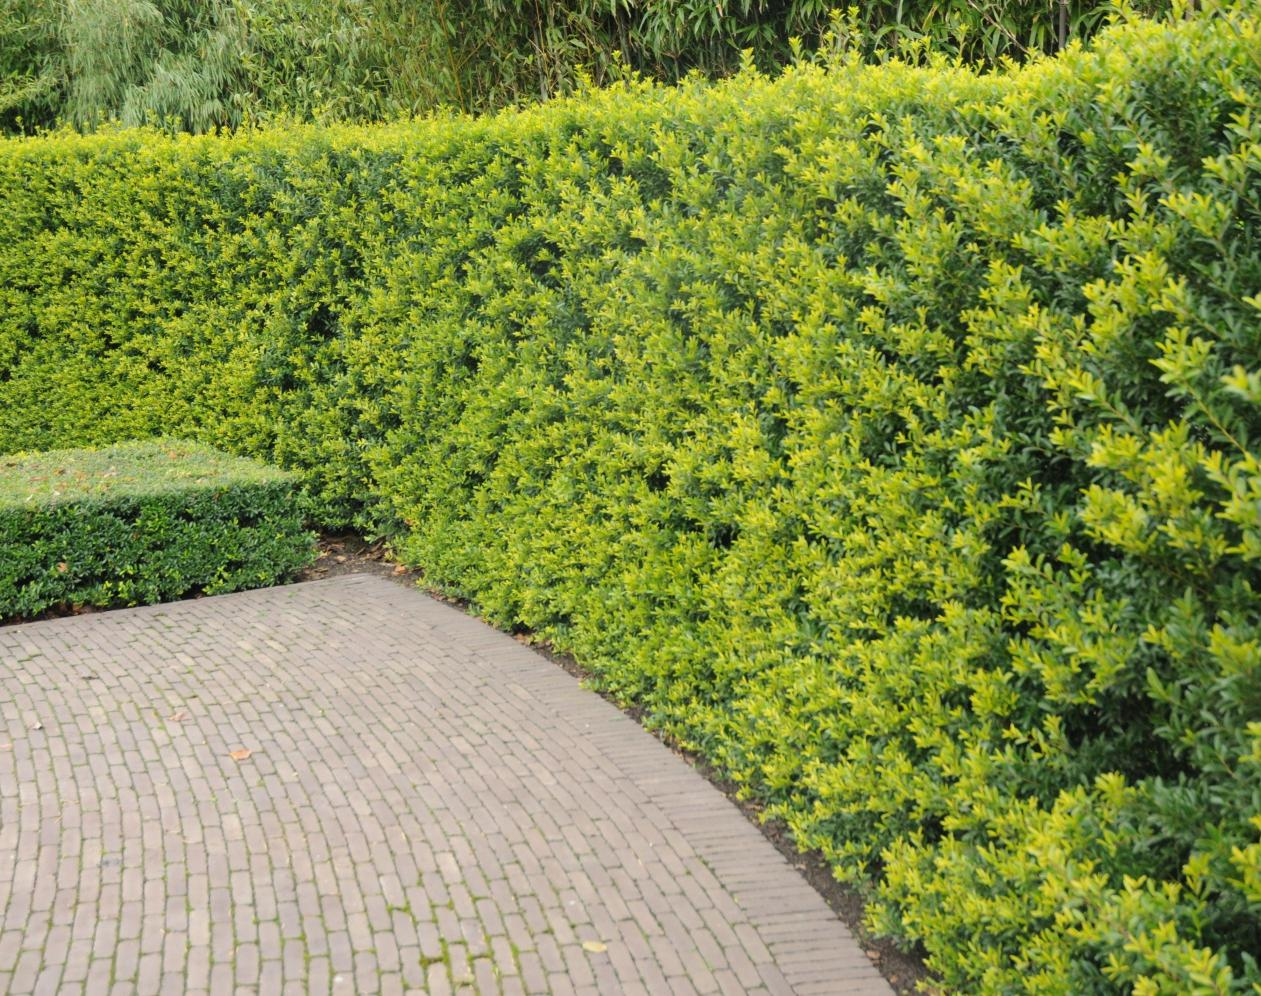 Planter Une Bordure De Buis ilex crenata 'green hedge' - alternatives aux buis - plantes